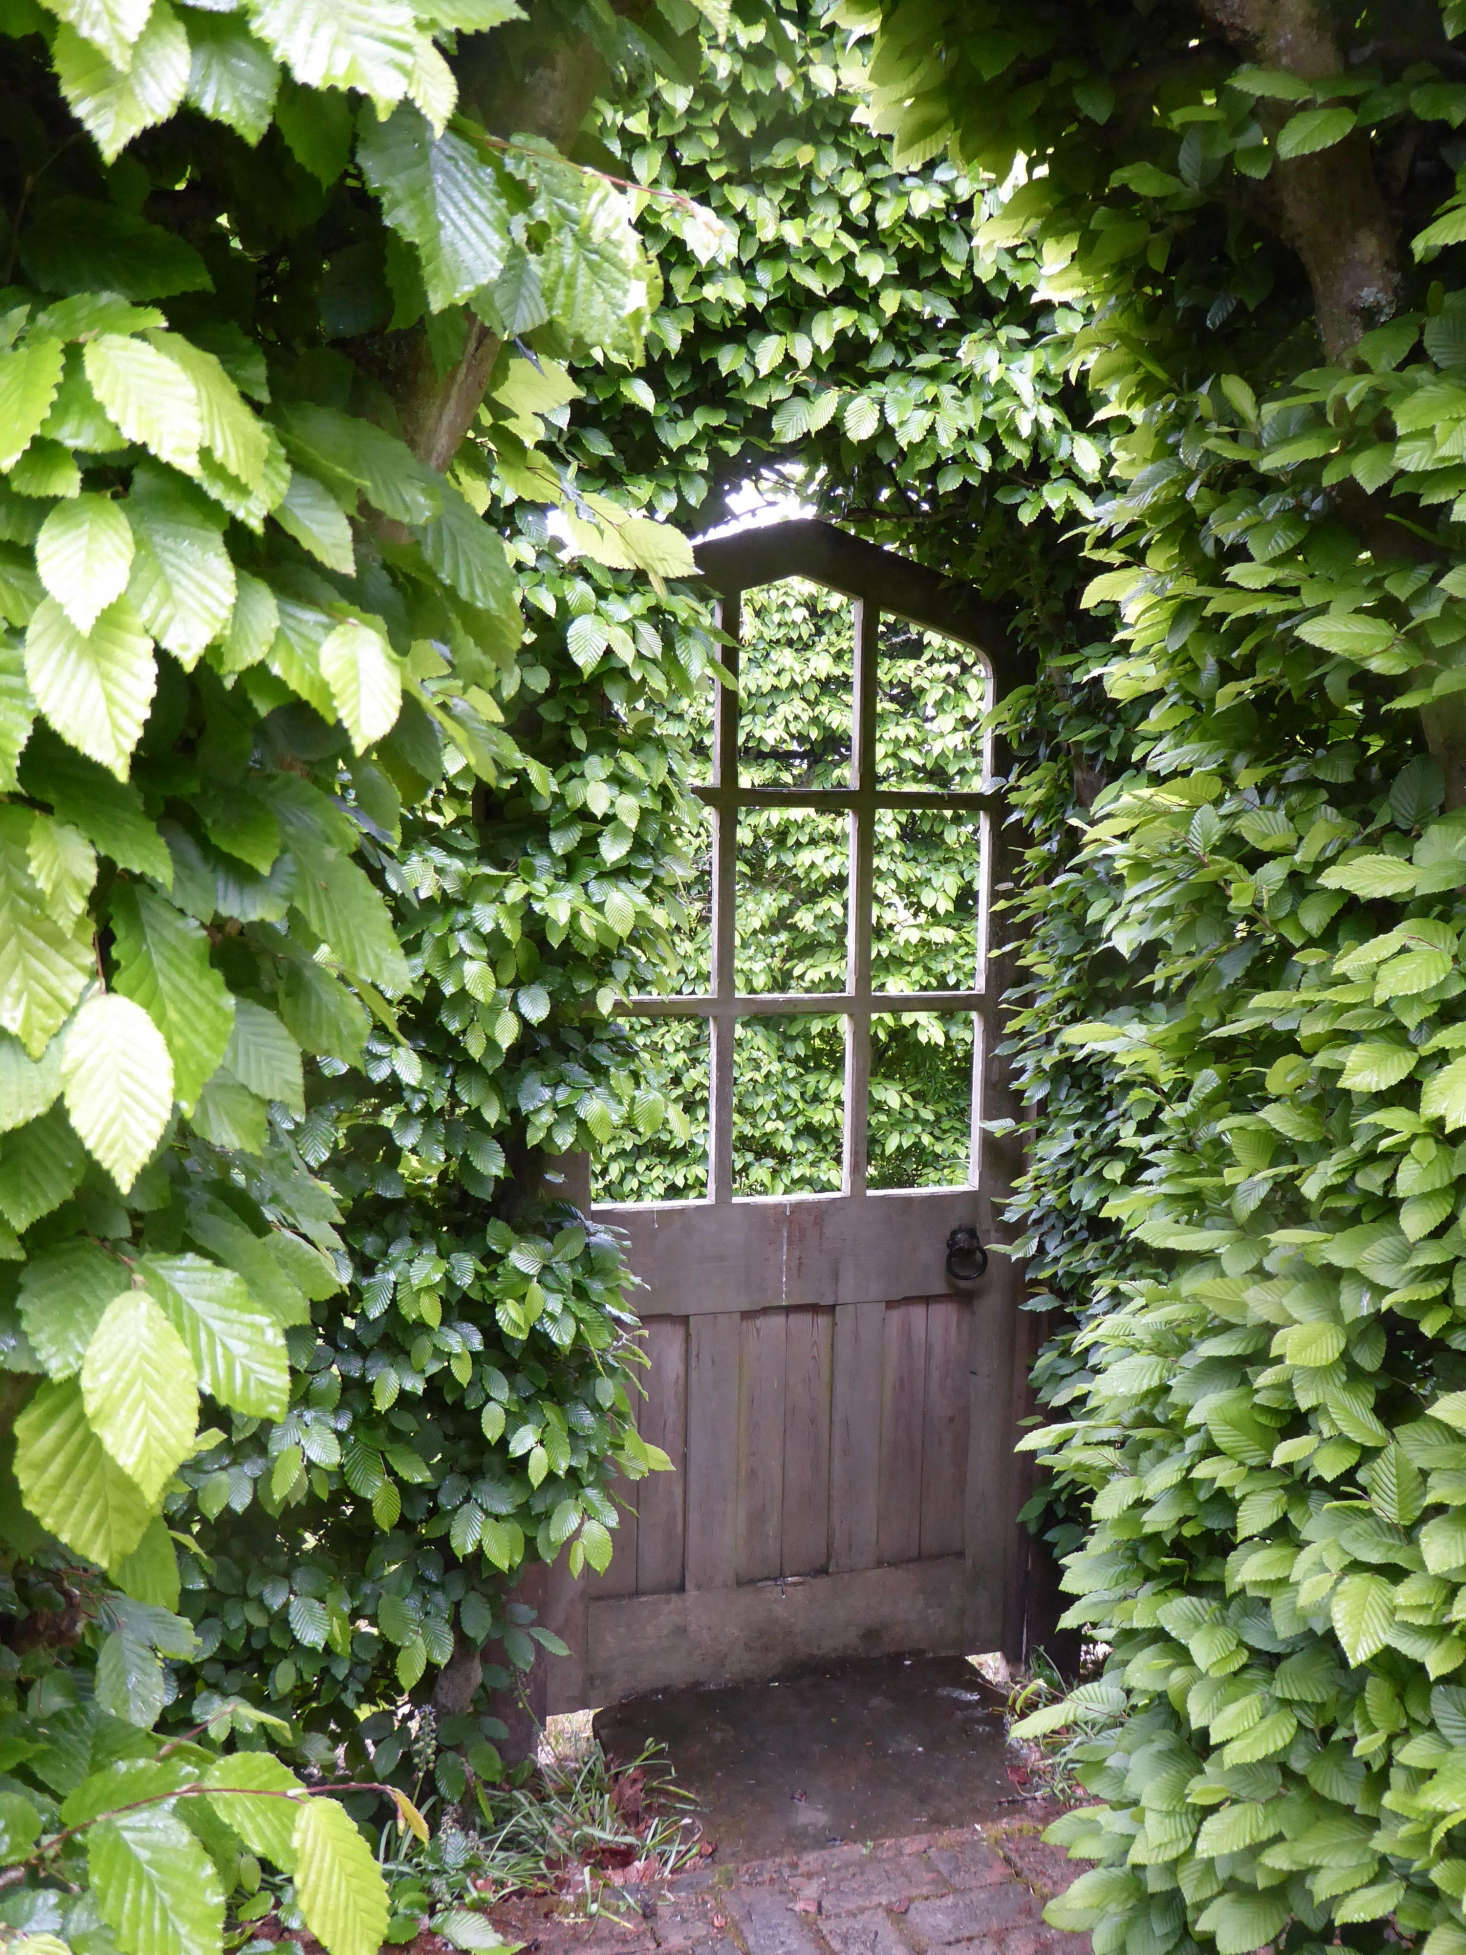 A wooden door in the hornbeam hedge leads to a secluded miniature green garden.